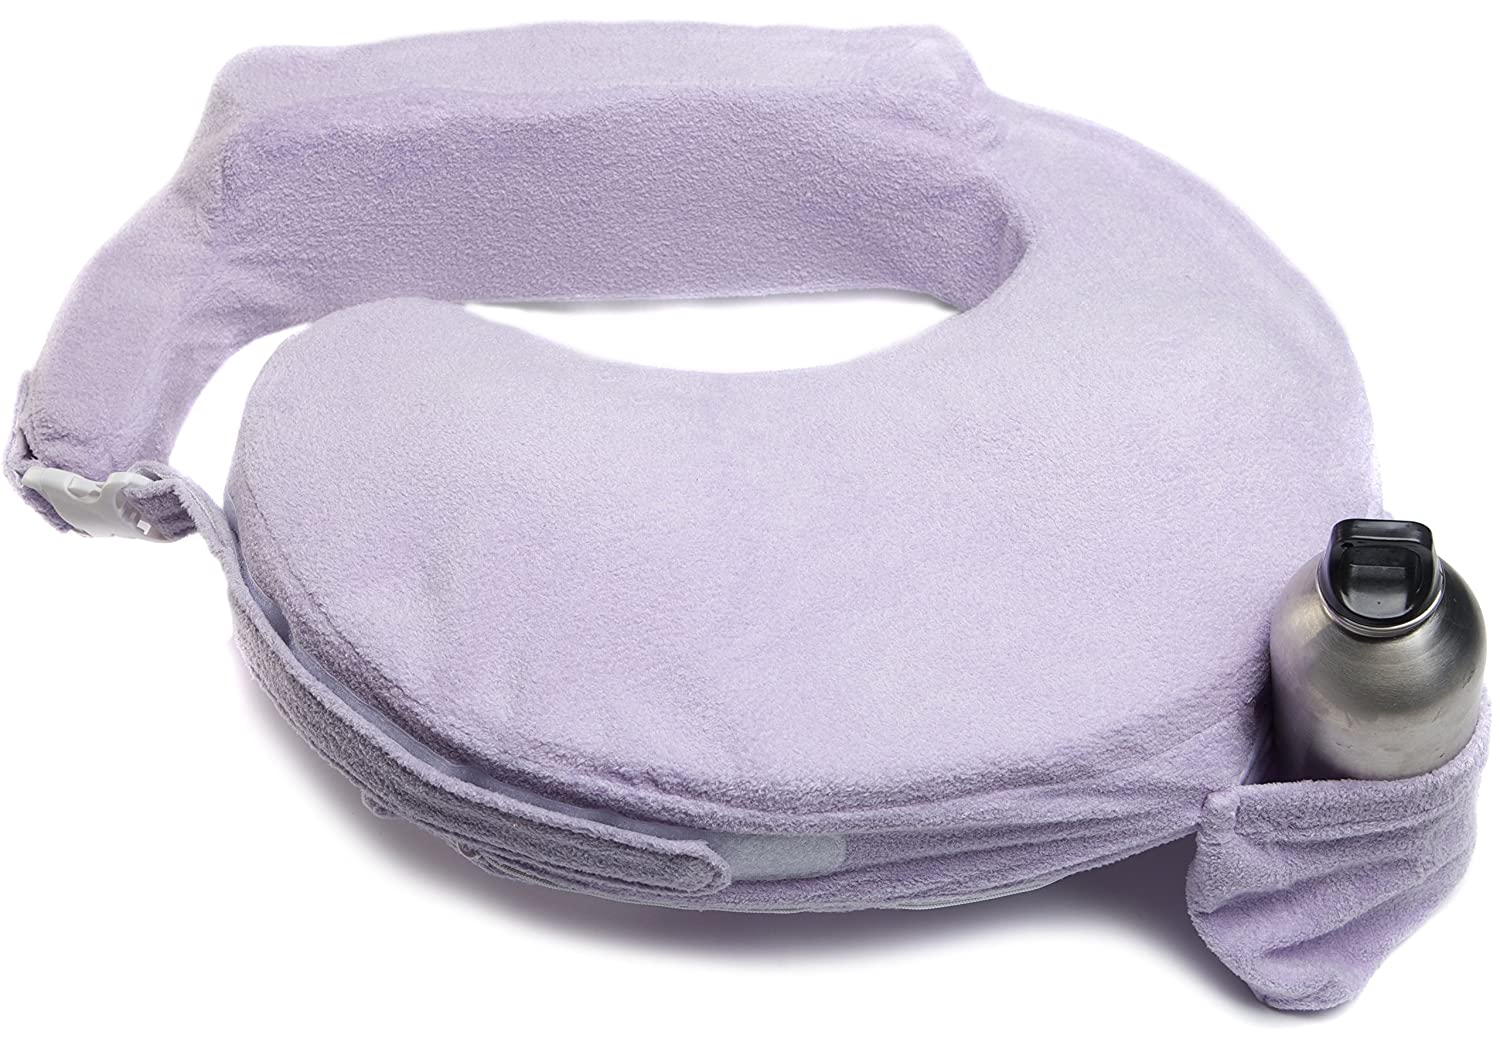 My Brest Friend Deluxe Pillow, Lilac Zenoff Products Inc. 826